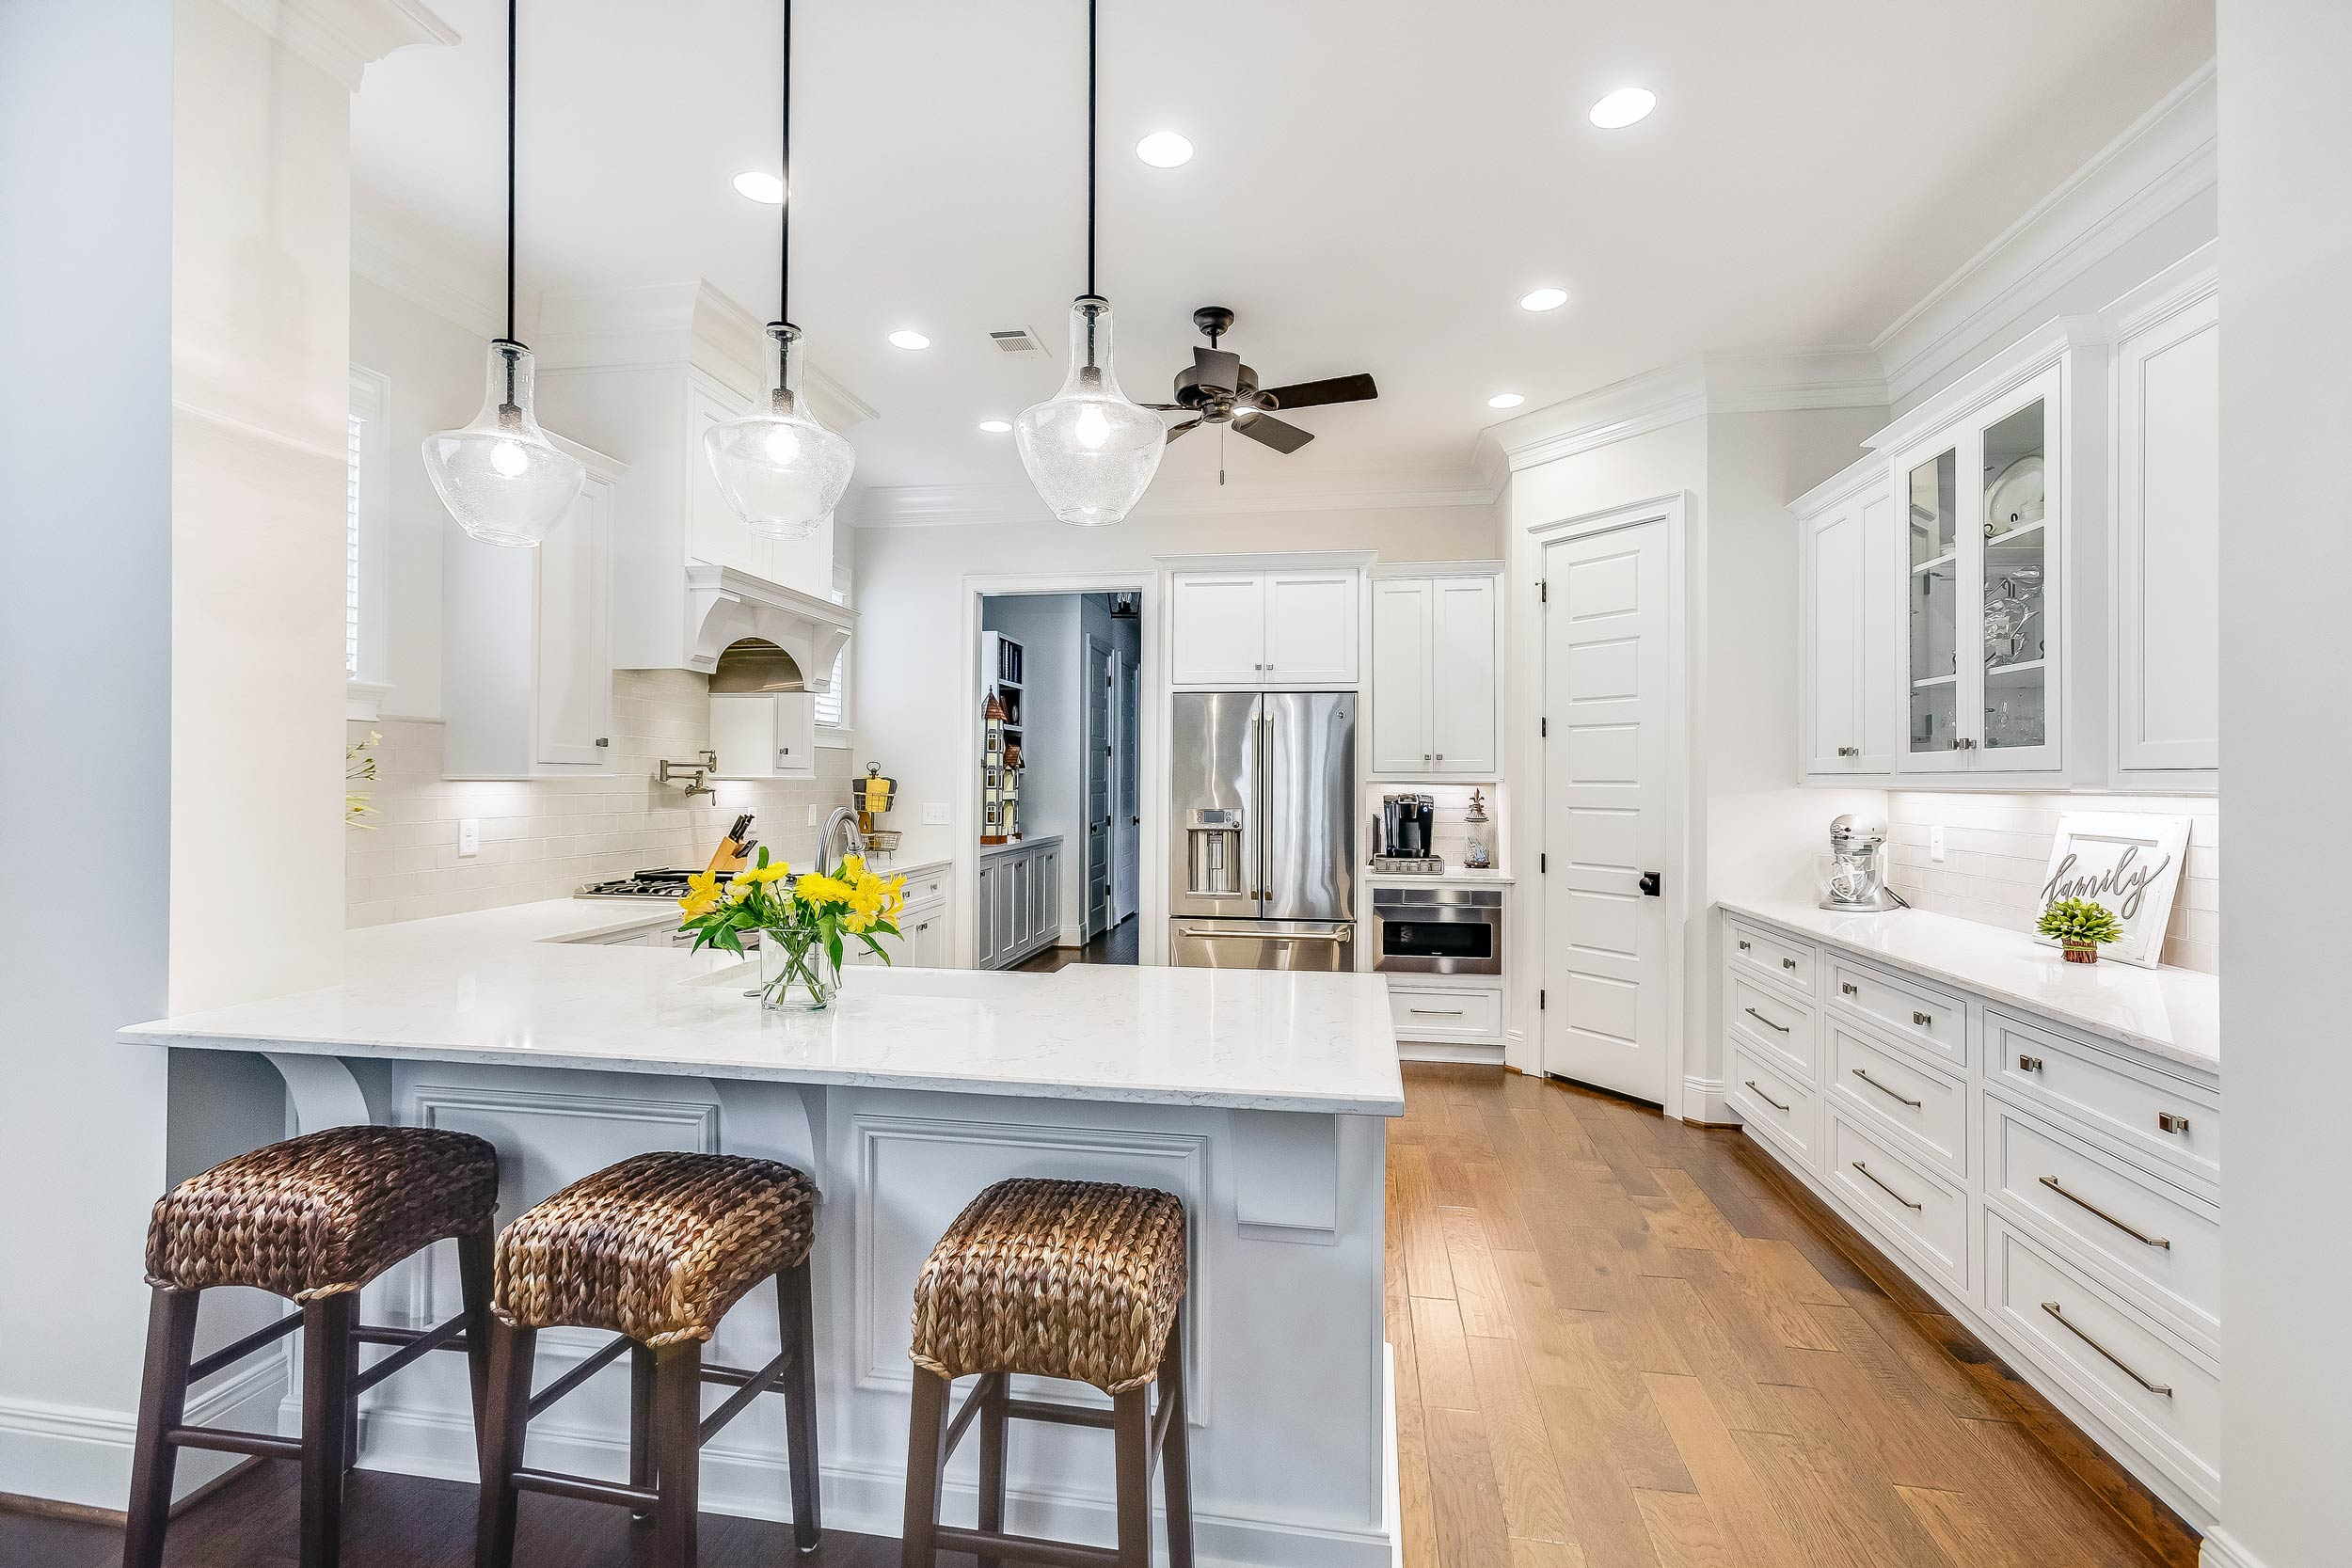 A new construction kitchen design with oversized kitchen Island corbels, seeded glass pendant lighting, an engineered wood floor, and a Sharp microwave drawer.